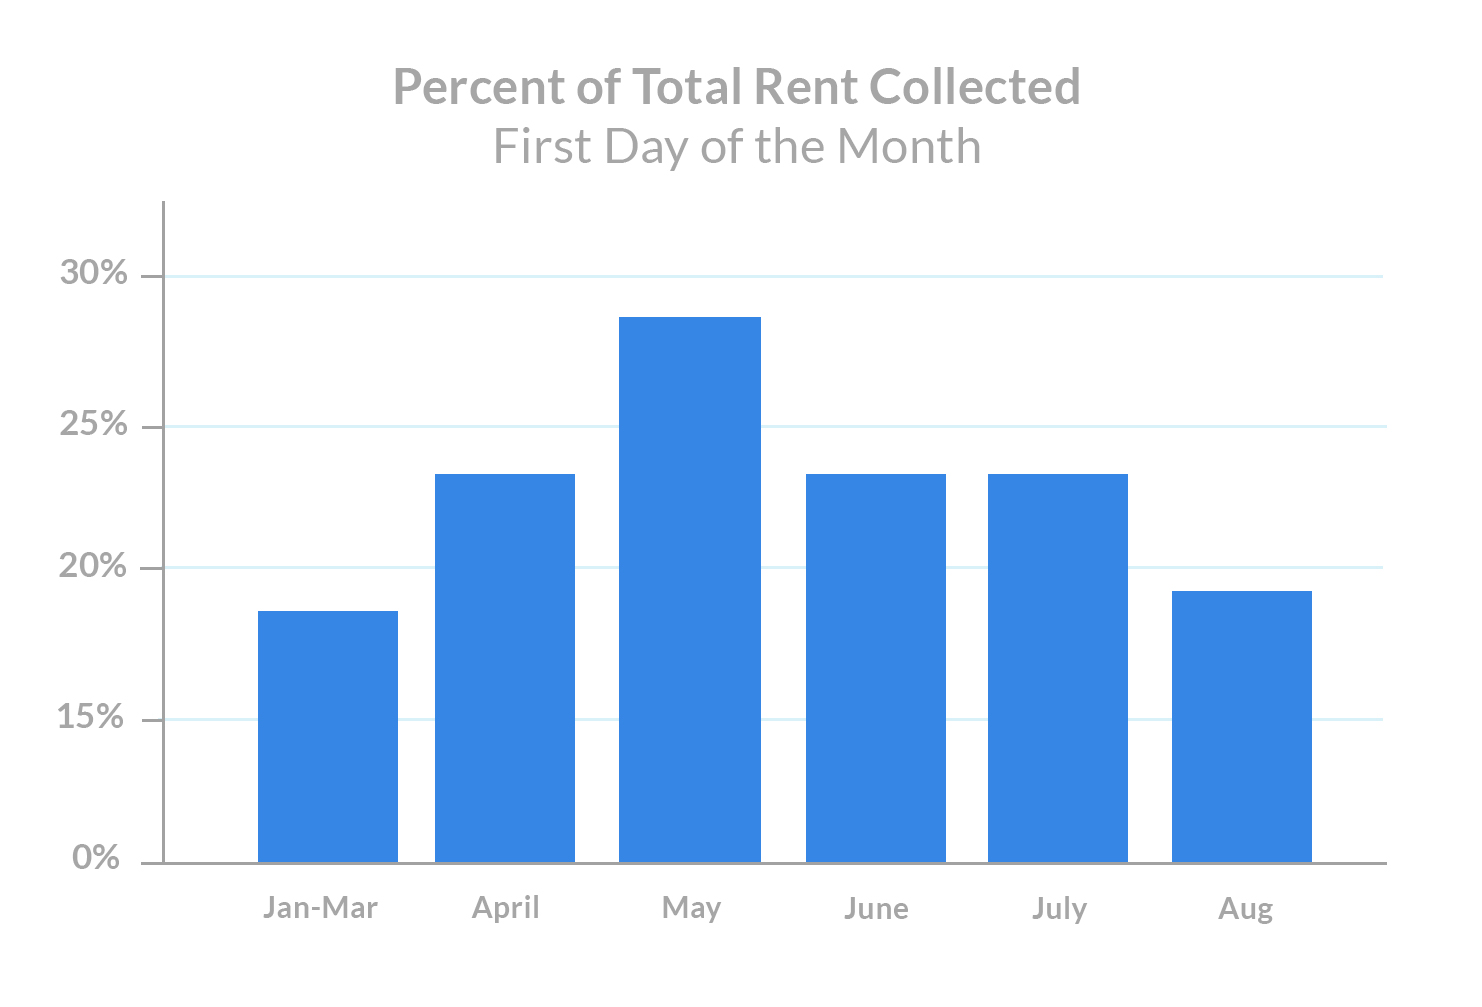 august-1st-rent-payments-percent-of-total-rent-collected